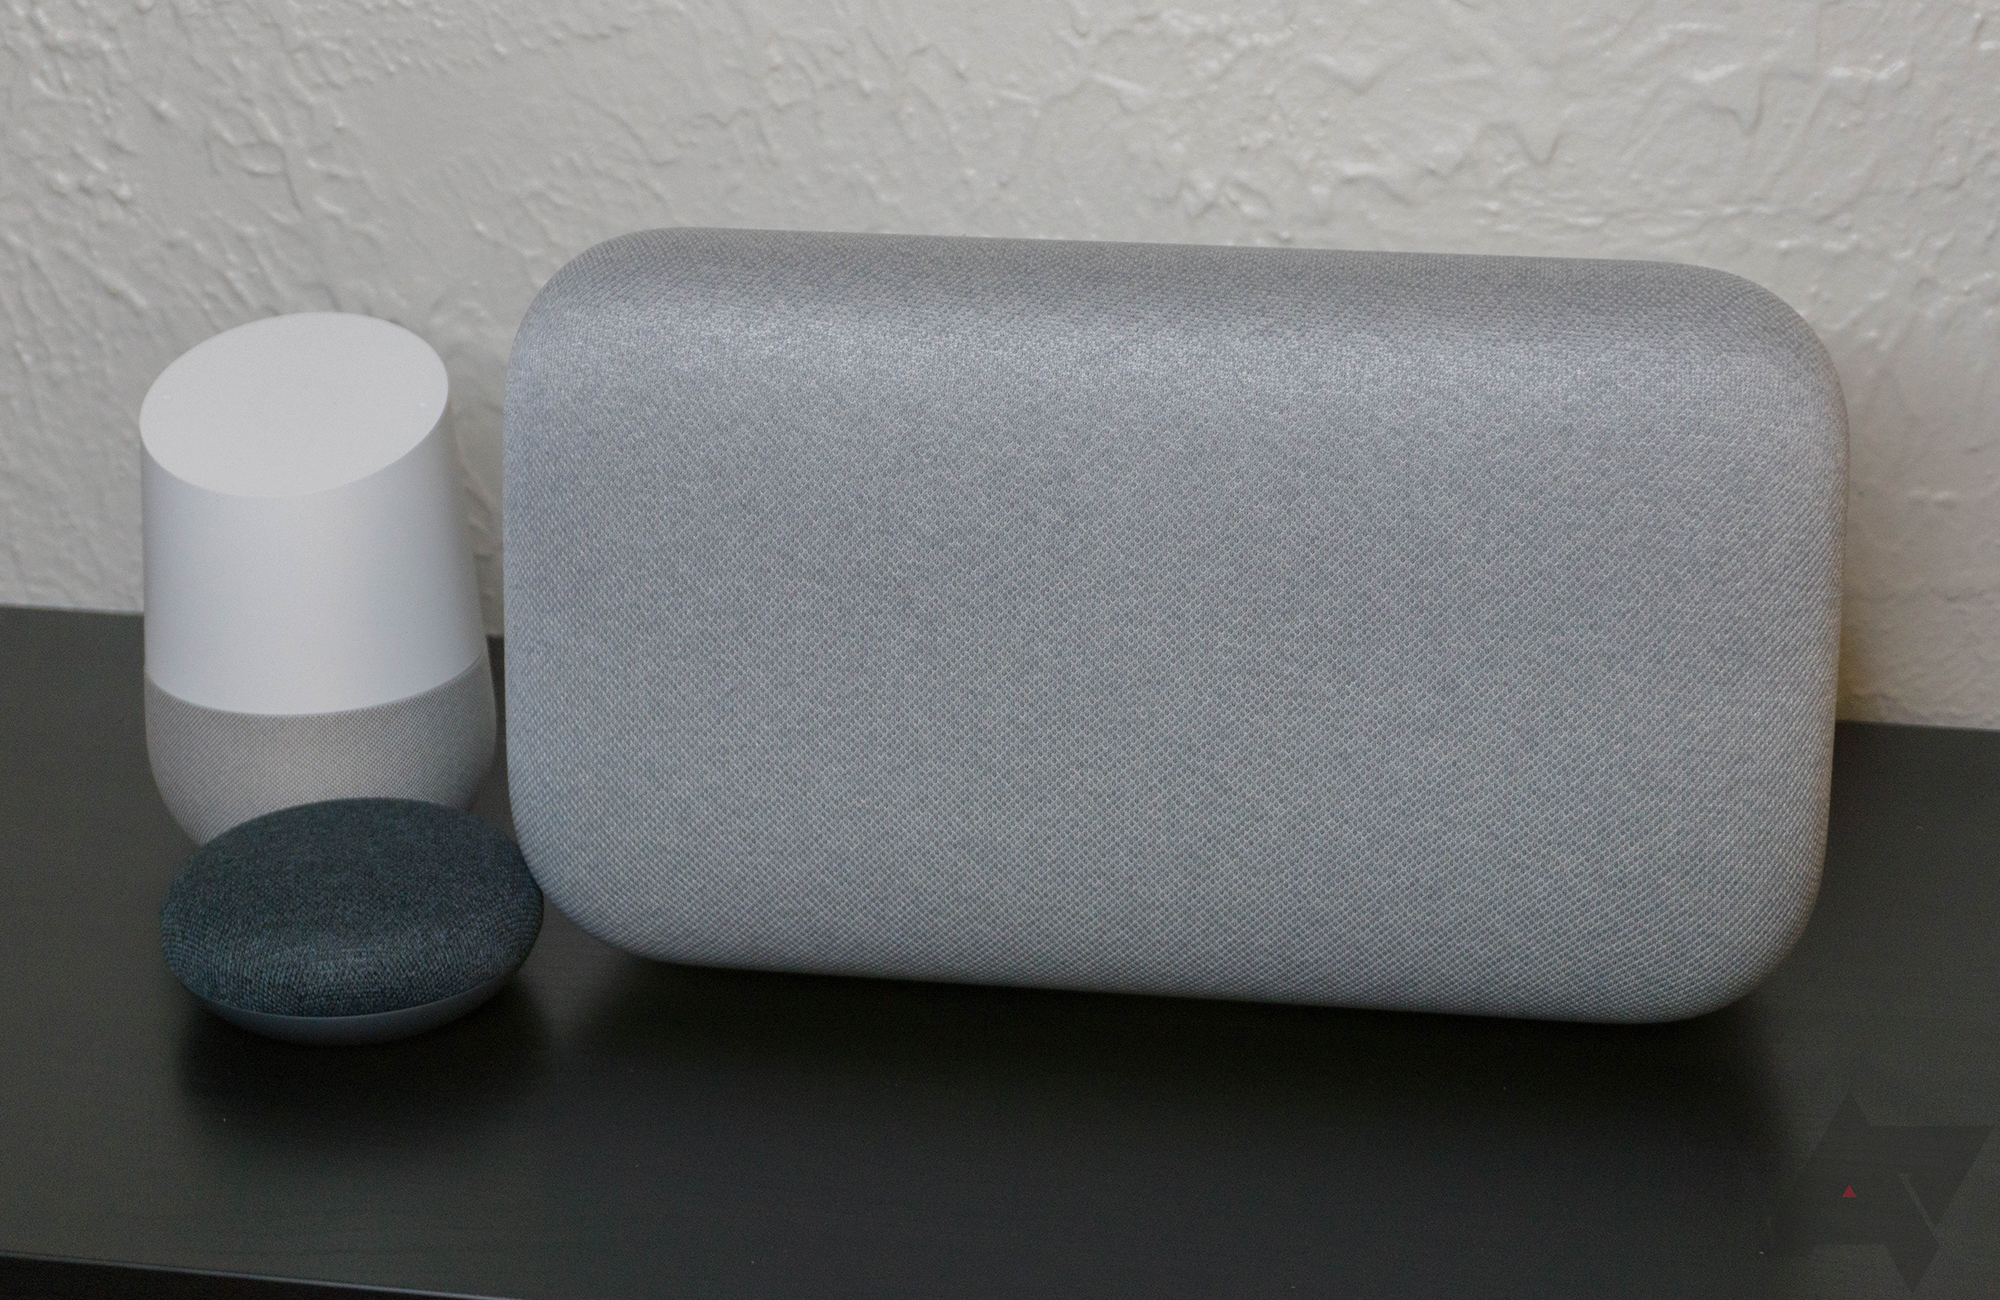 Amazon dominates the smart speaker market while Google's sales fall 40%